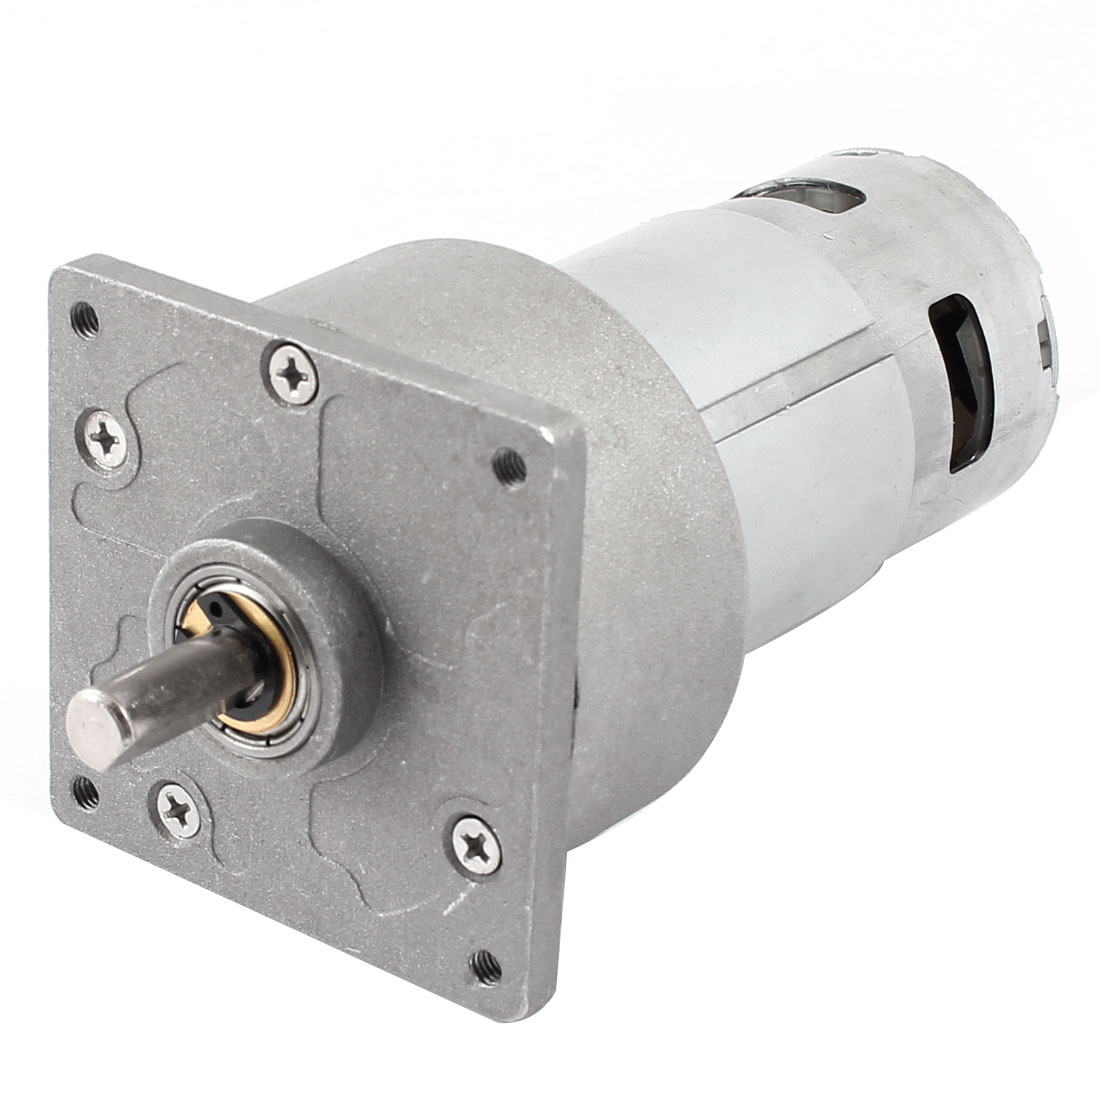 DC 24V 4600r/Min Flange Mounted Speed Reduce Magnetic Electric Geared Motor